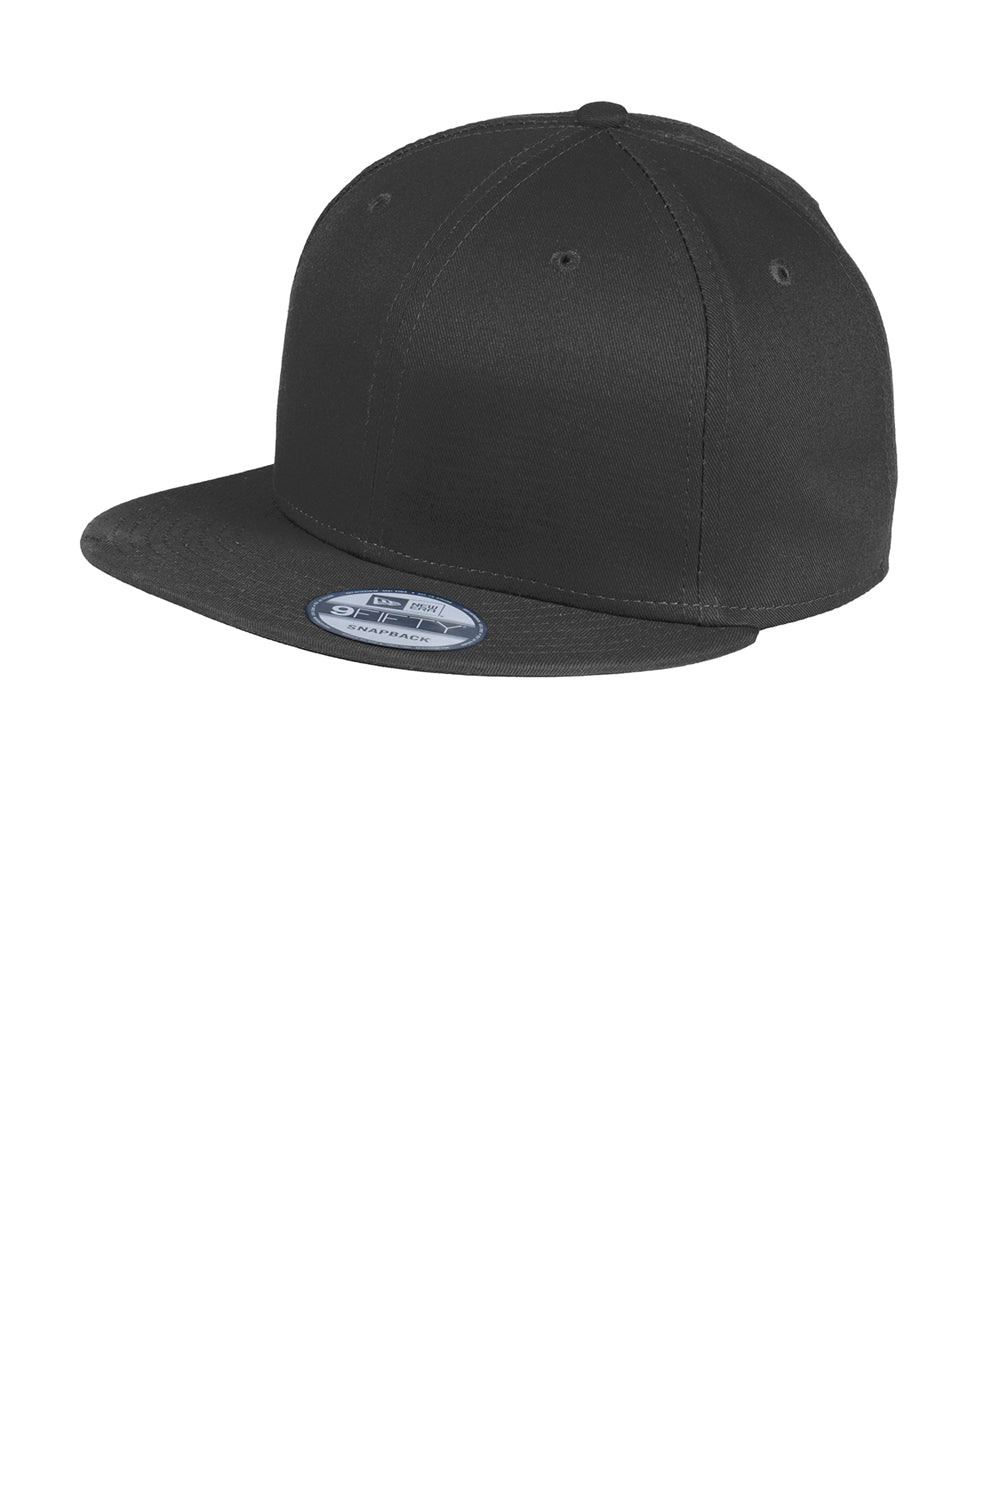 New Era NE400 Mens Adjustable Hat Black Front